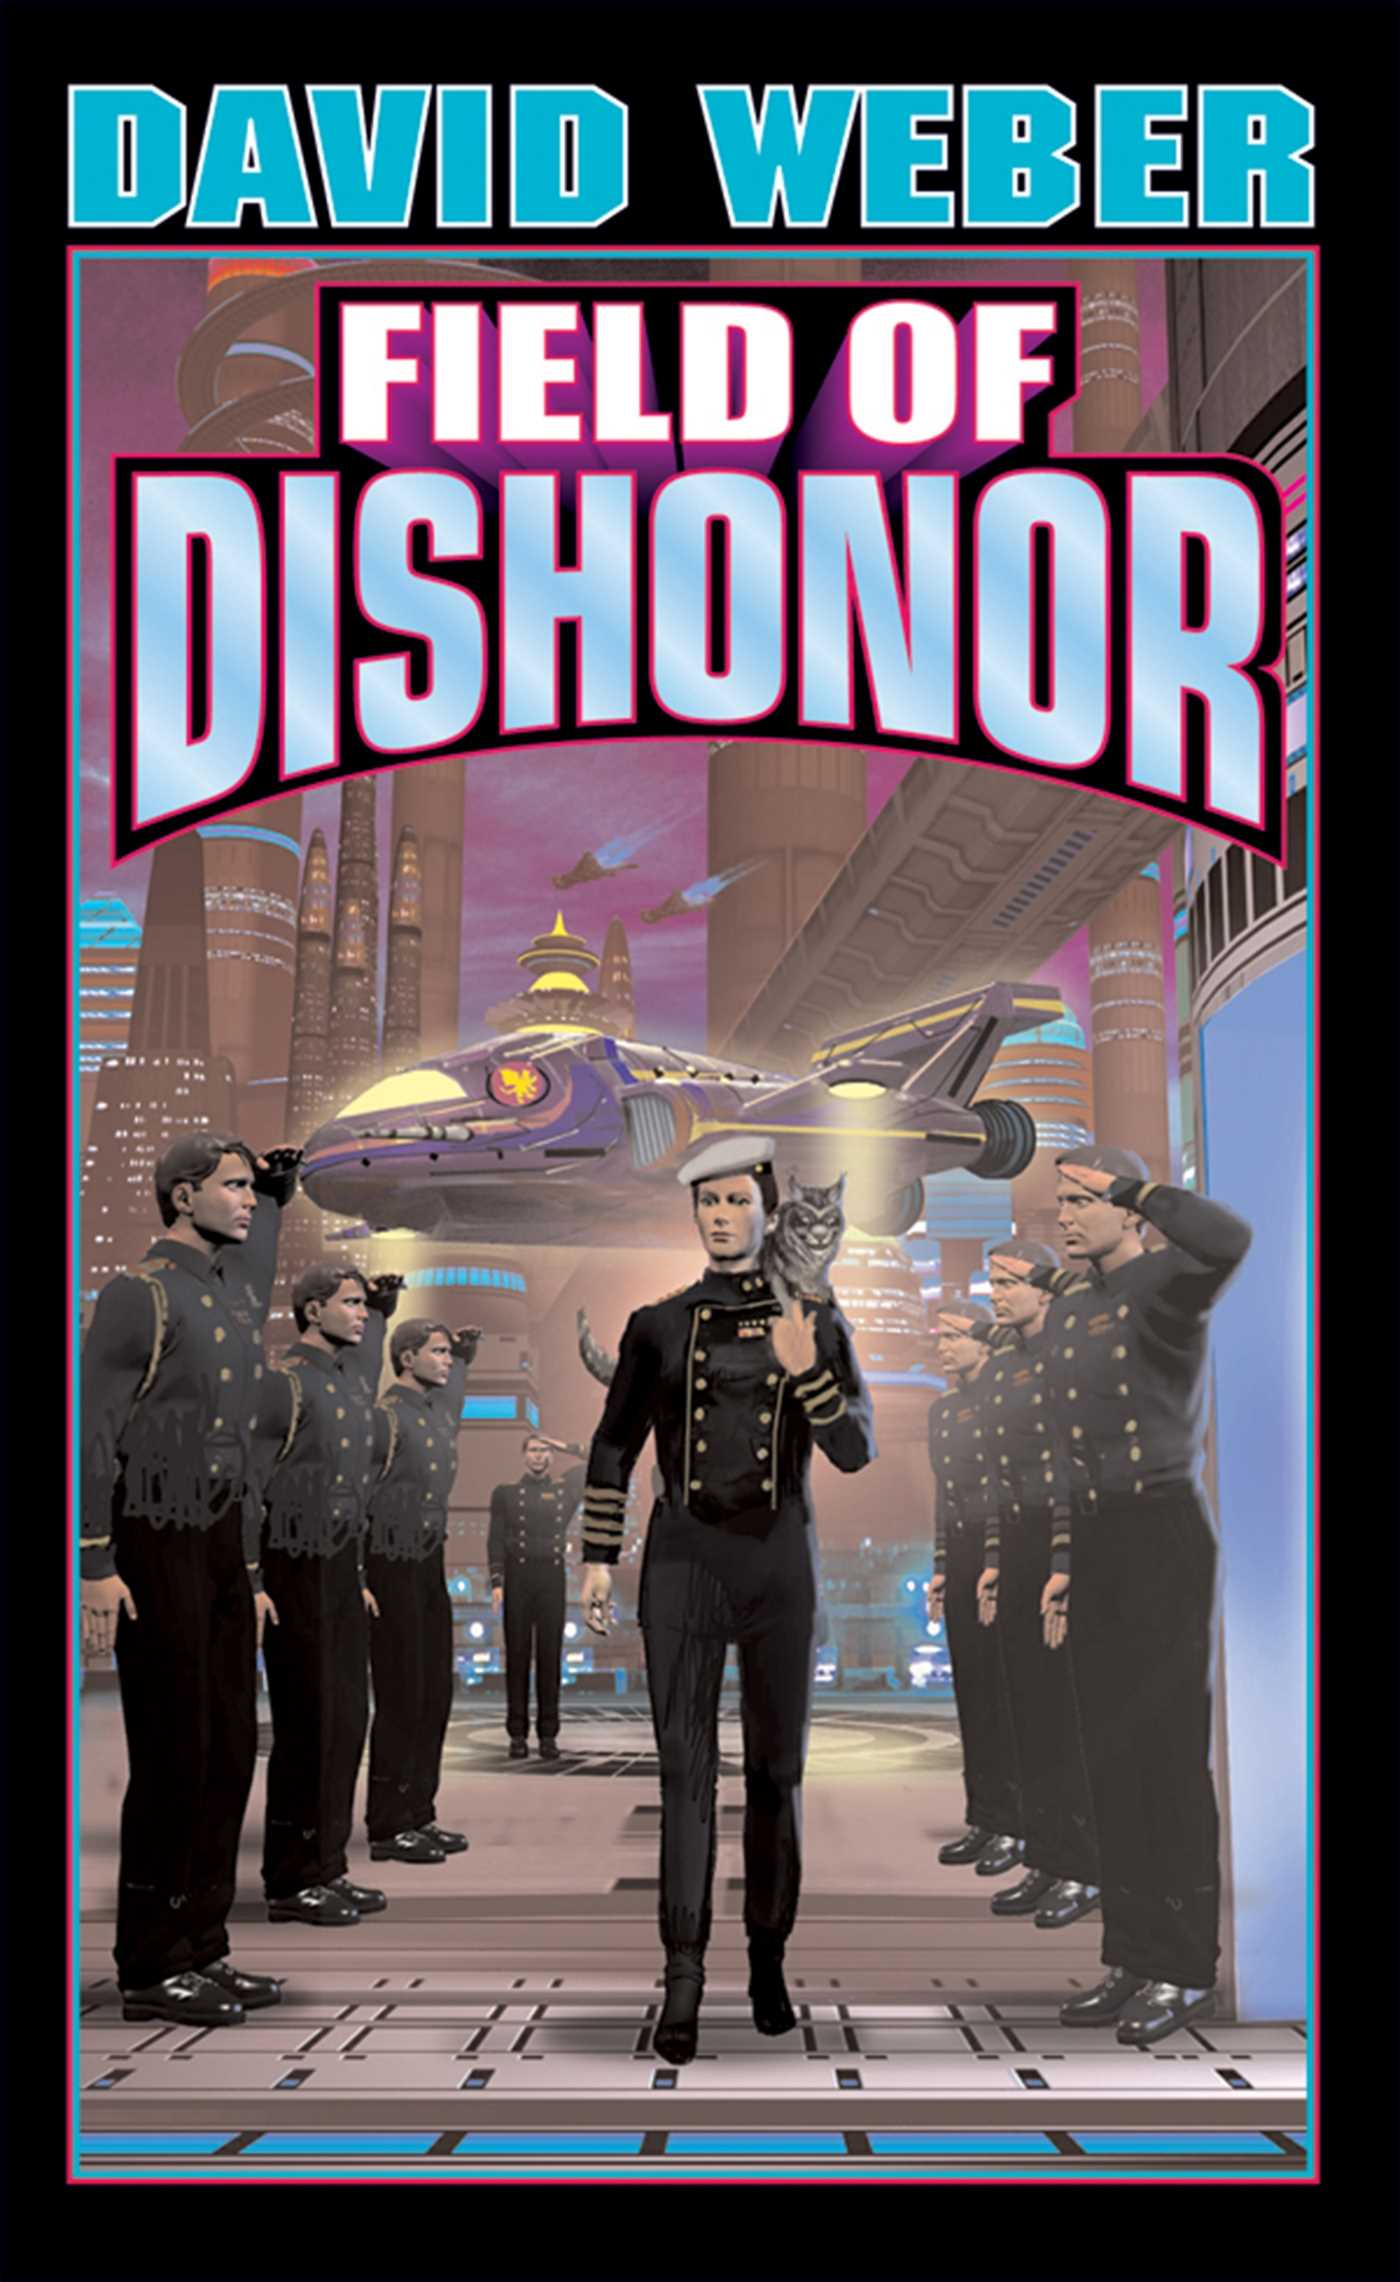 Field-of-dishonor-9780743435741_hr